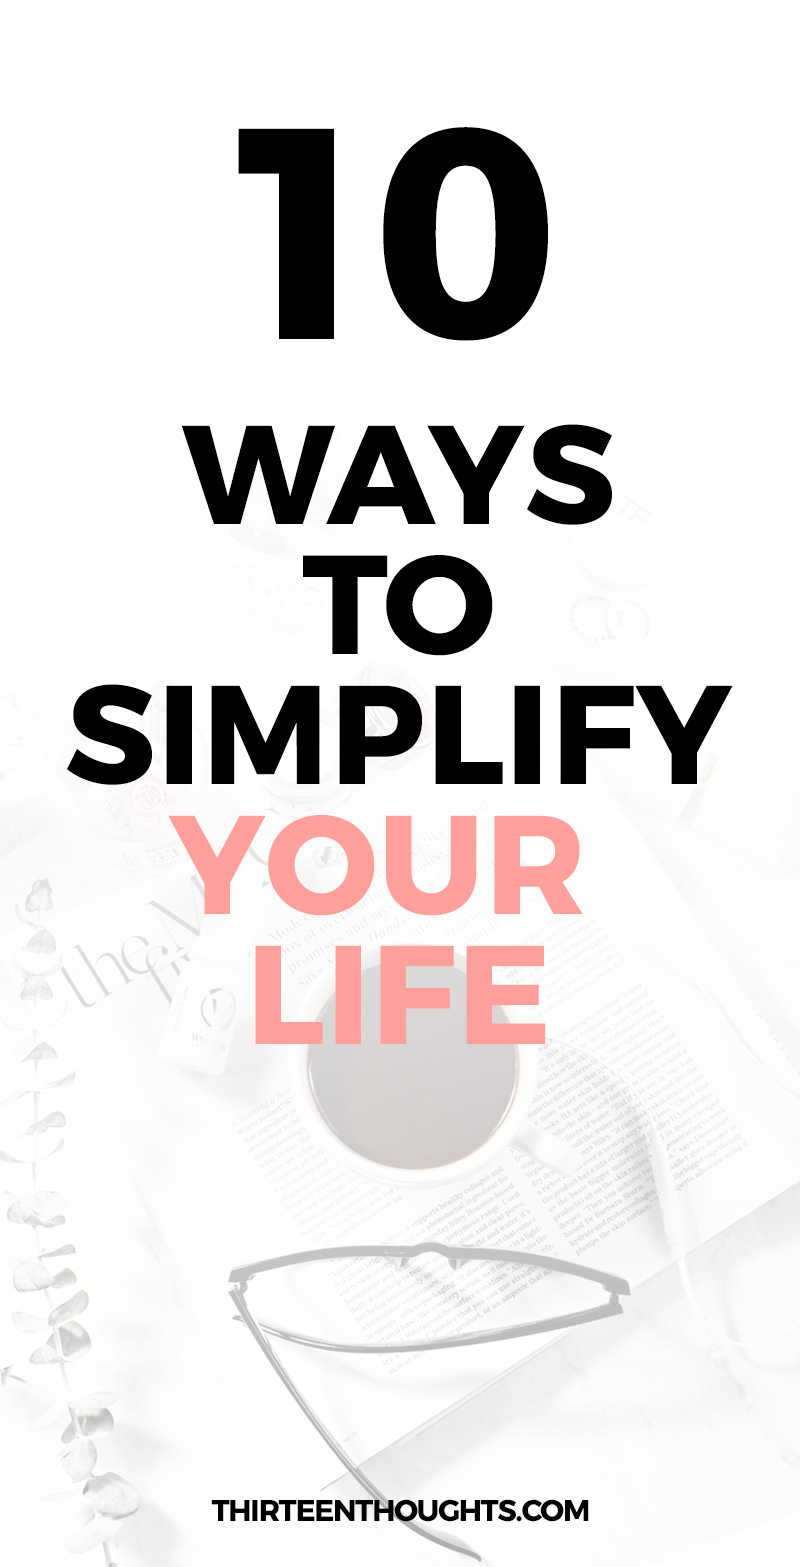 Simple Living: Ways to Simplify Your Life #happiness #mindfulness #slowliving